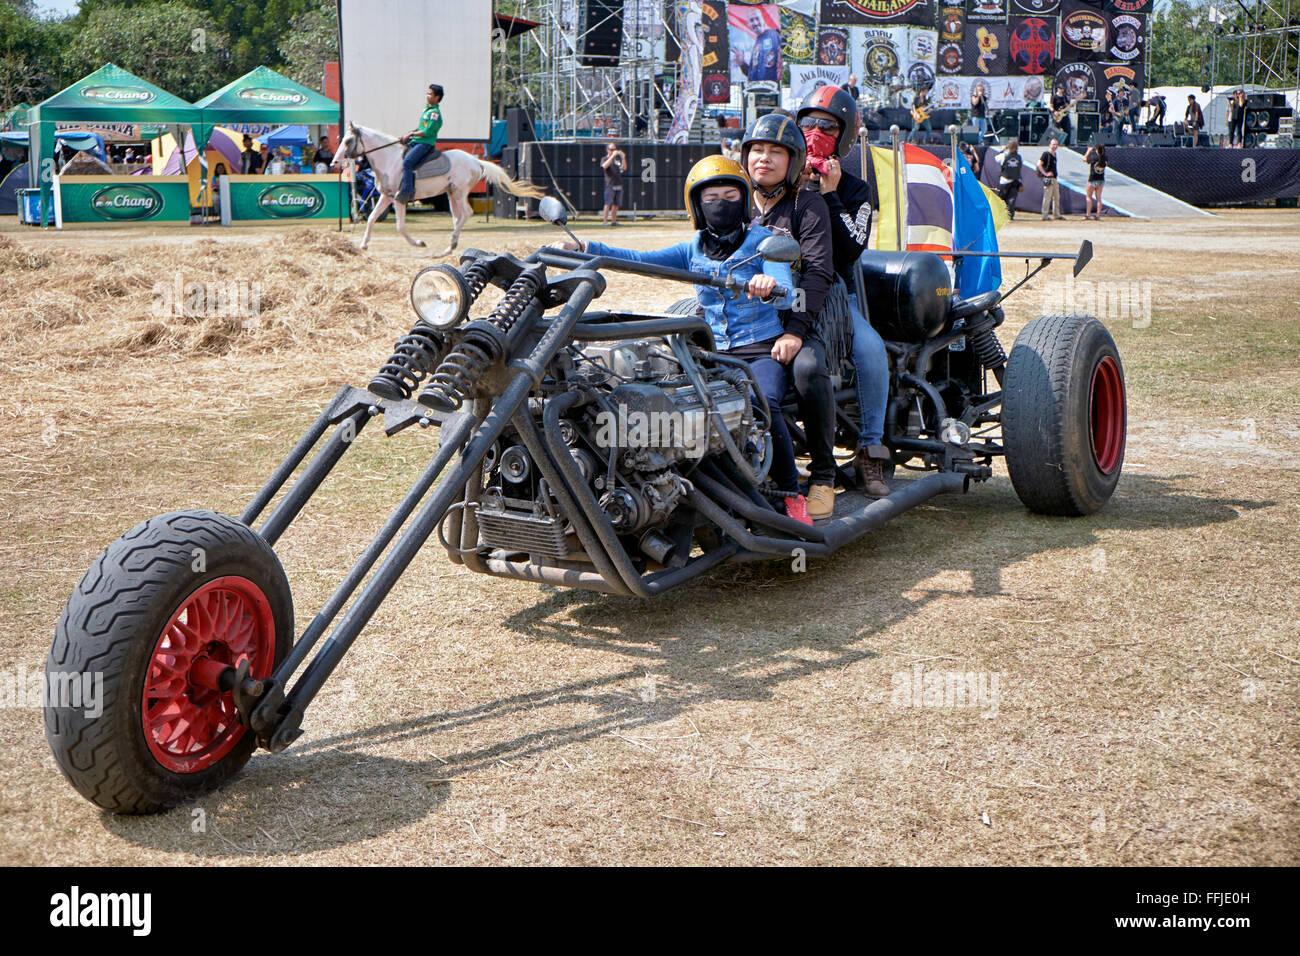 Extremely stretched custom chopper motorcycle at the 2016 Burapha bike festival Pattaya Thailand S. E. Asia. - Stock Image